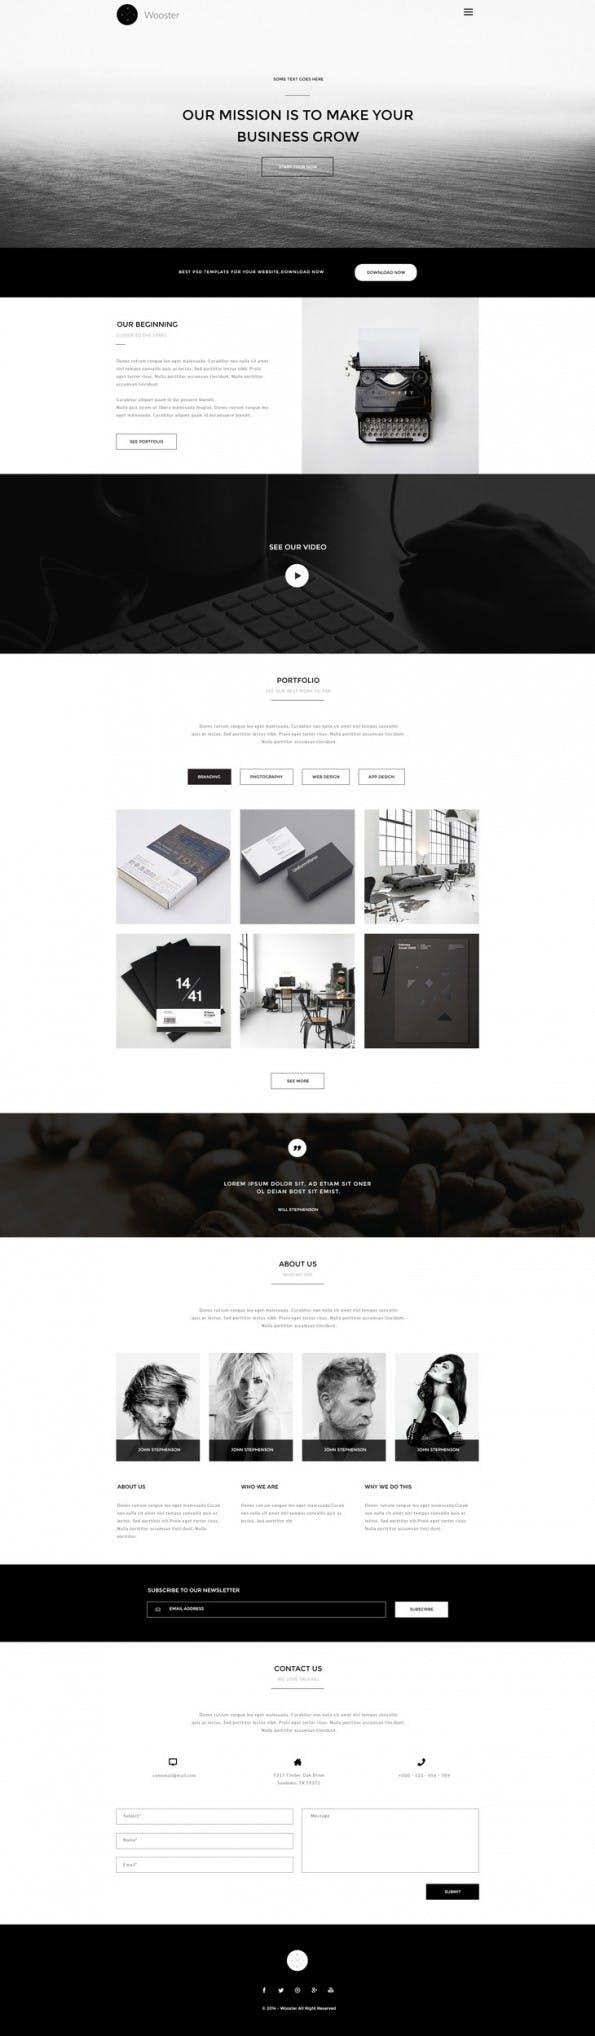 Wooster - Vintage Single Page PSD Theme - Web-Templates